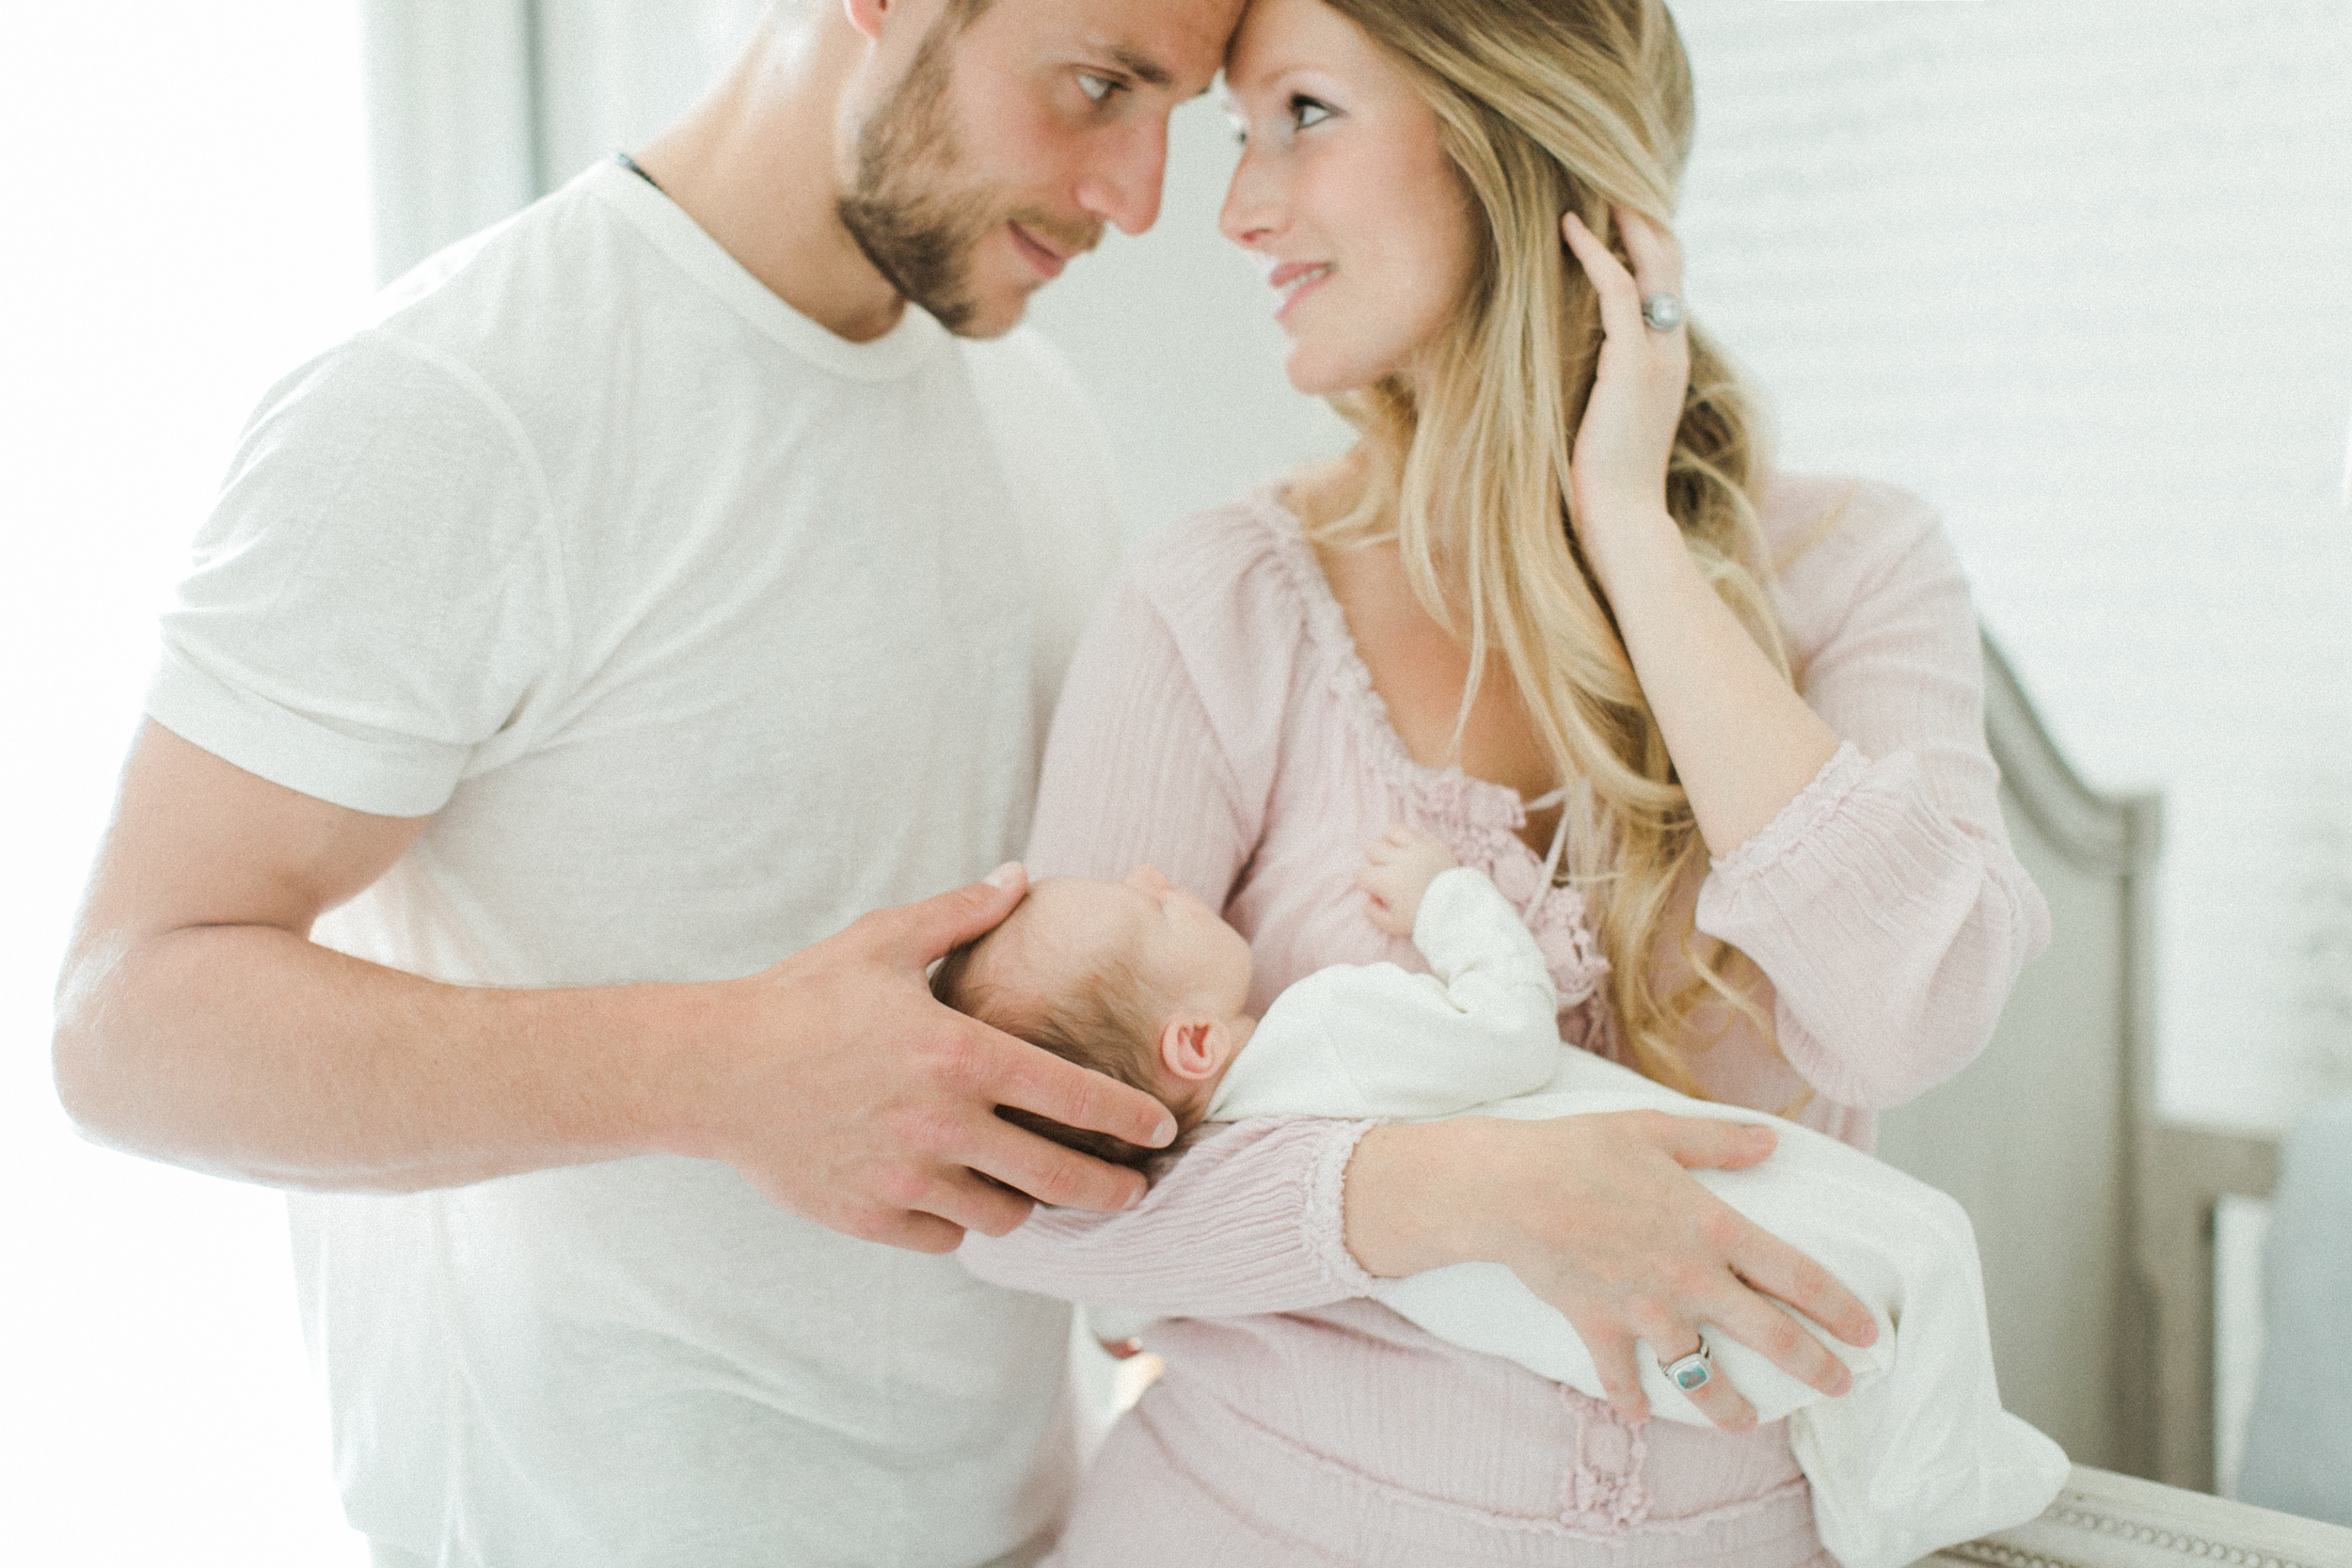 toronto-baby-photographer-canada-richelle-hunter-photography-gregory-campbell-katie-campbell-32.jpg